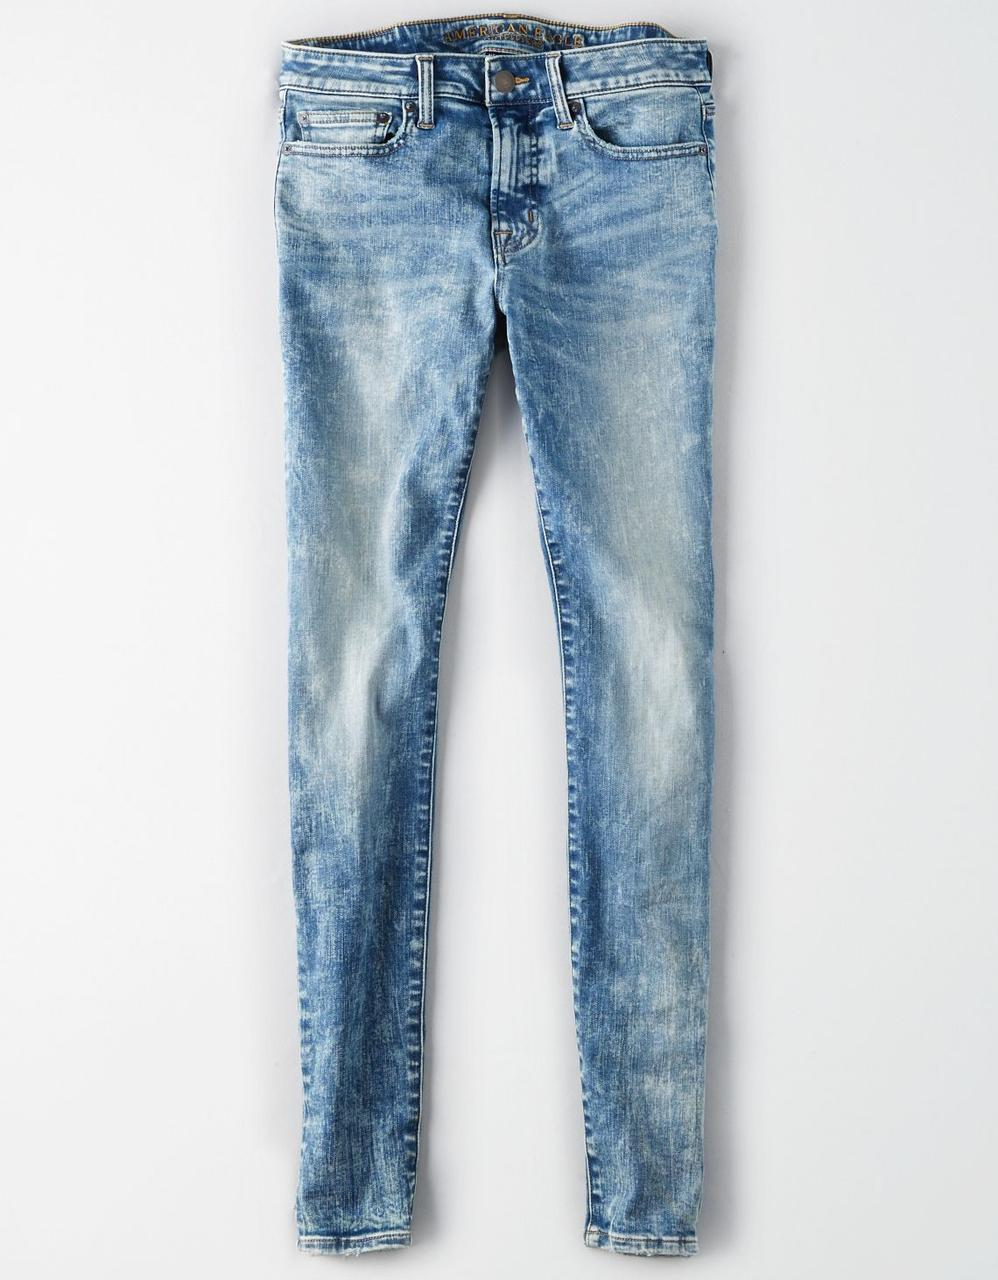 e0a15338f8 American Eagle Jeans, AE ULTRA SKINNY JEANS for Men at Aeo.in